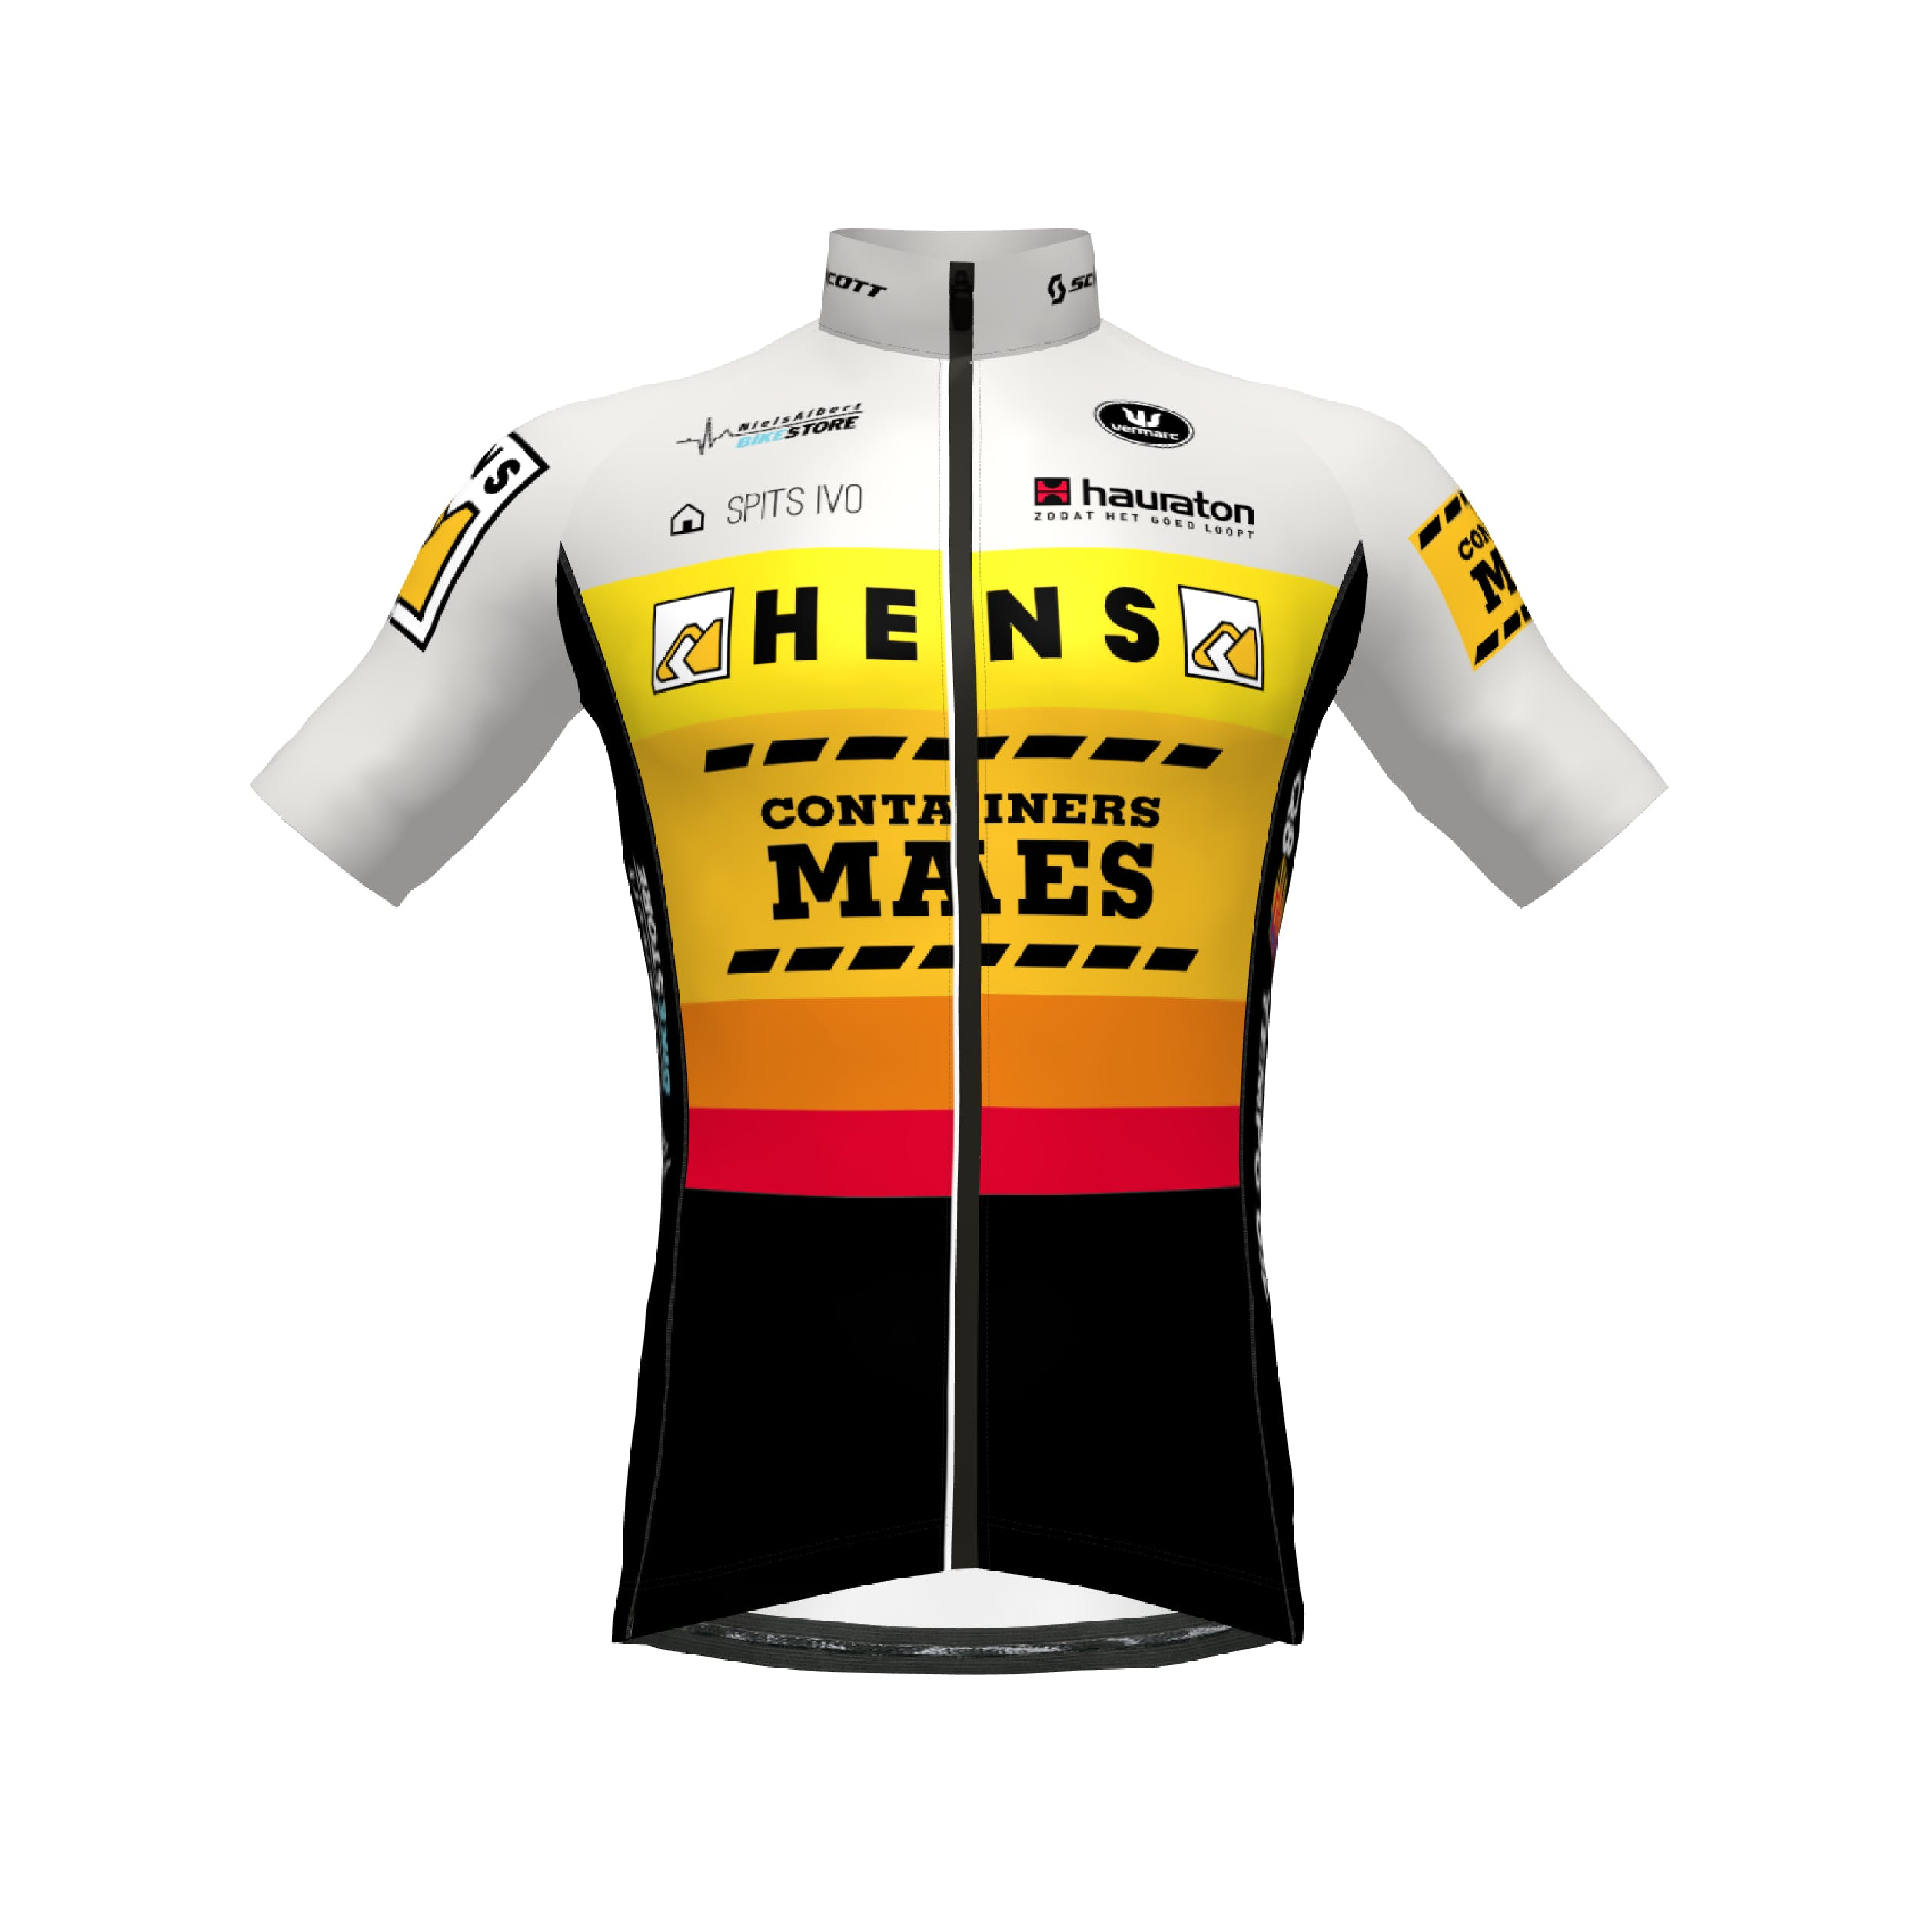 Hens Maes 2021 Maillot Manches Courtes SP.L Aero